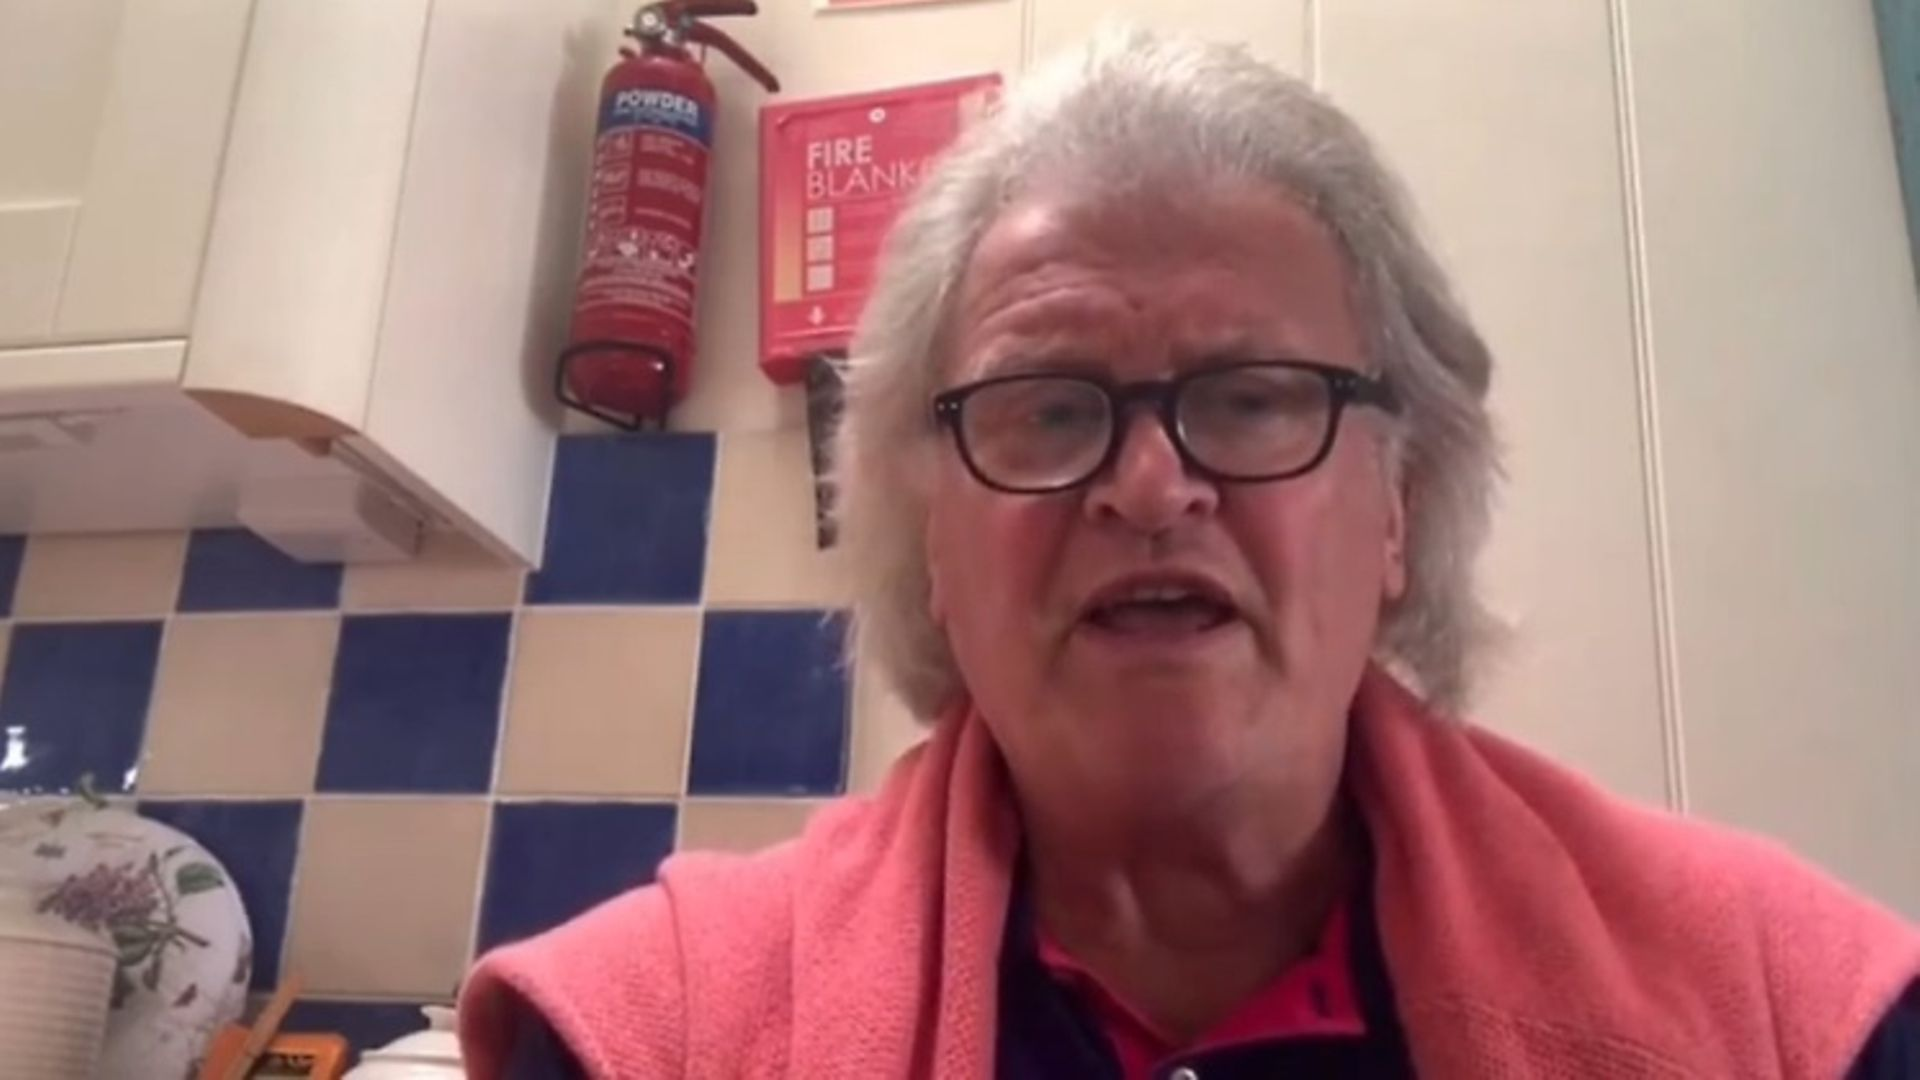 Wetherspoon boss Tim Martin appears on Ian King Live. - Credit: Sky News